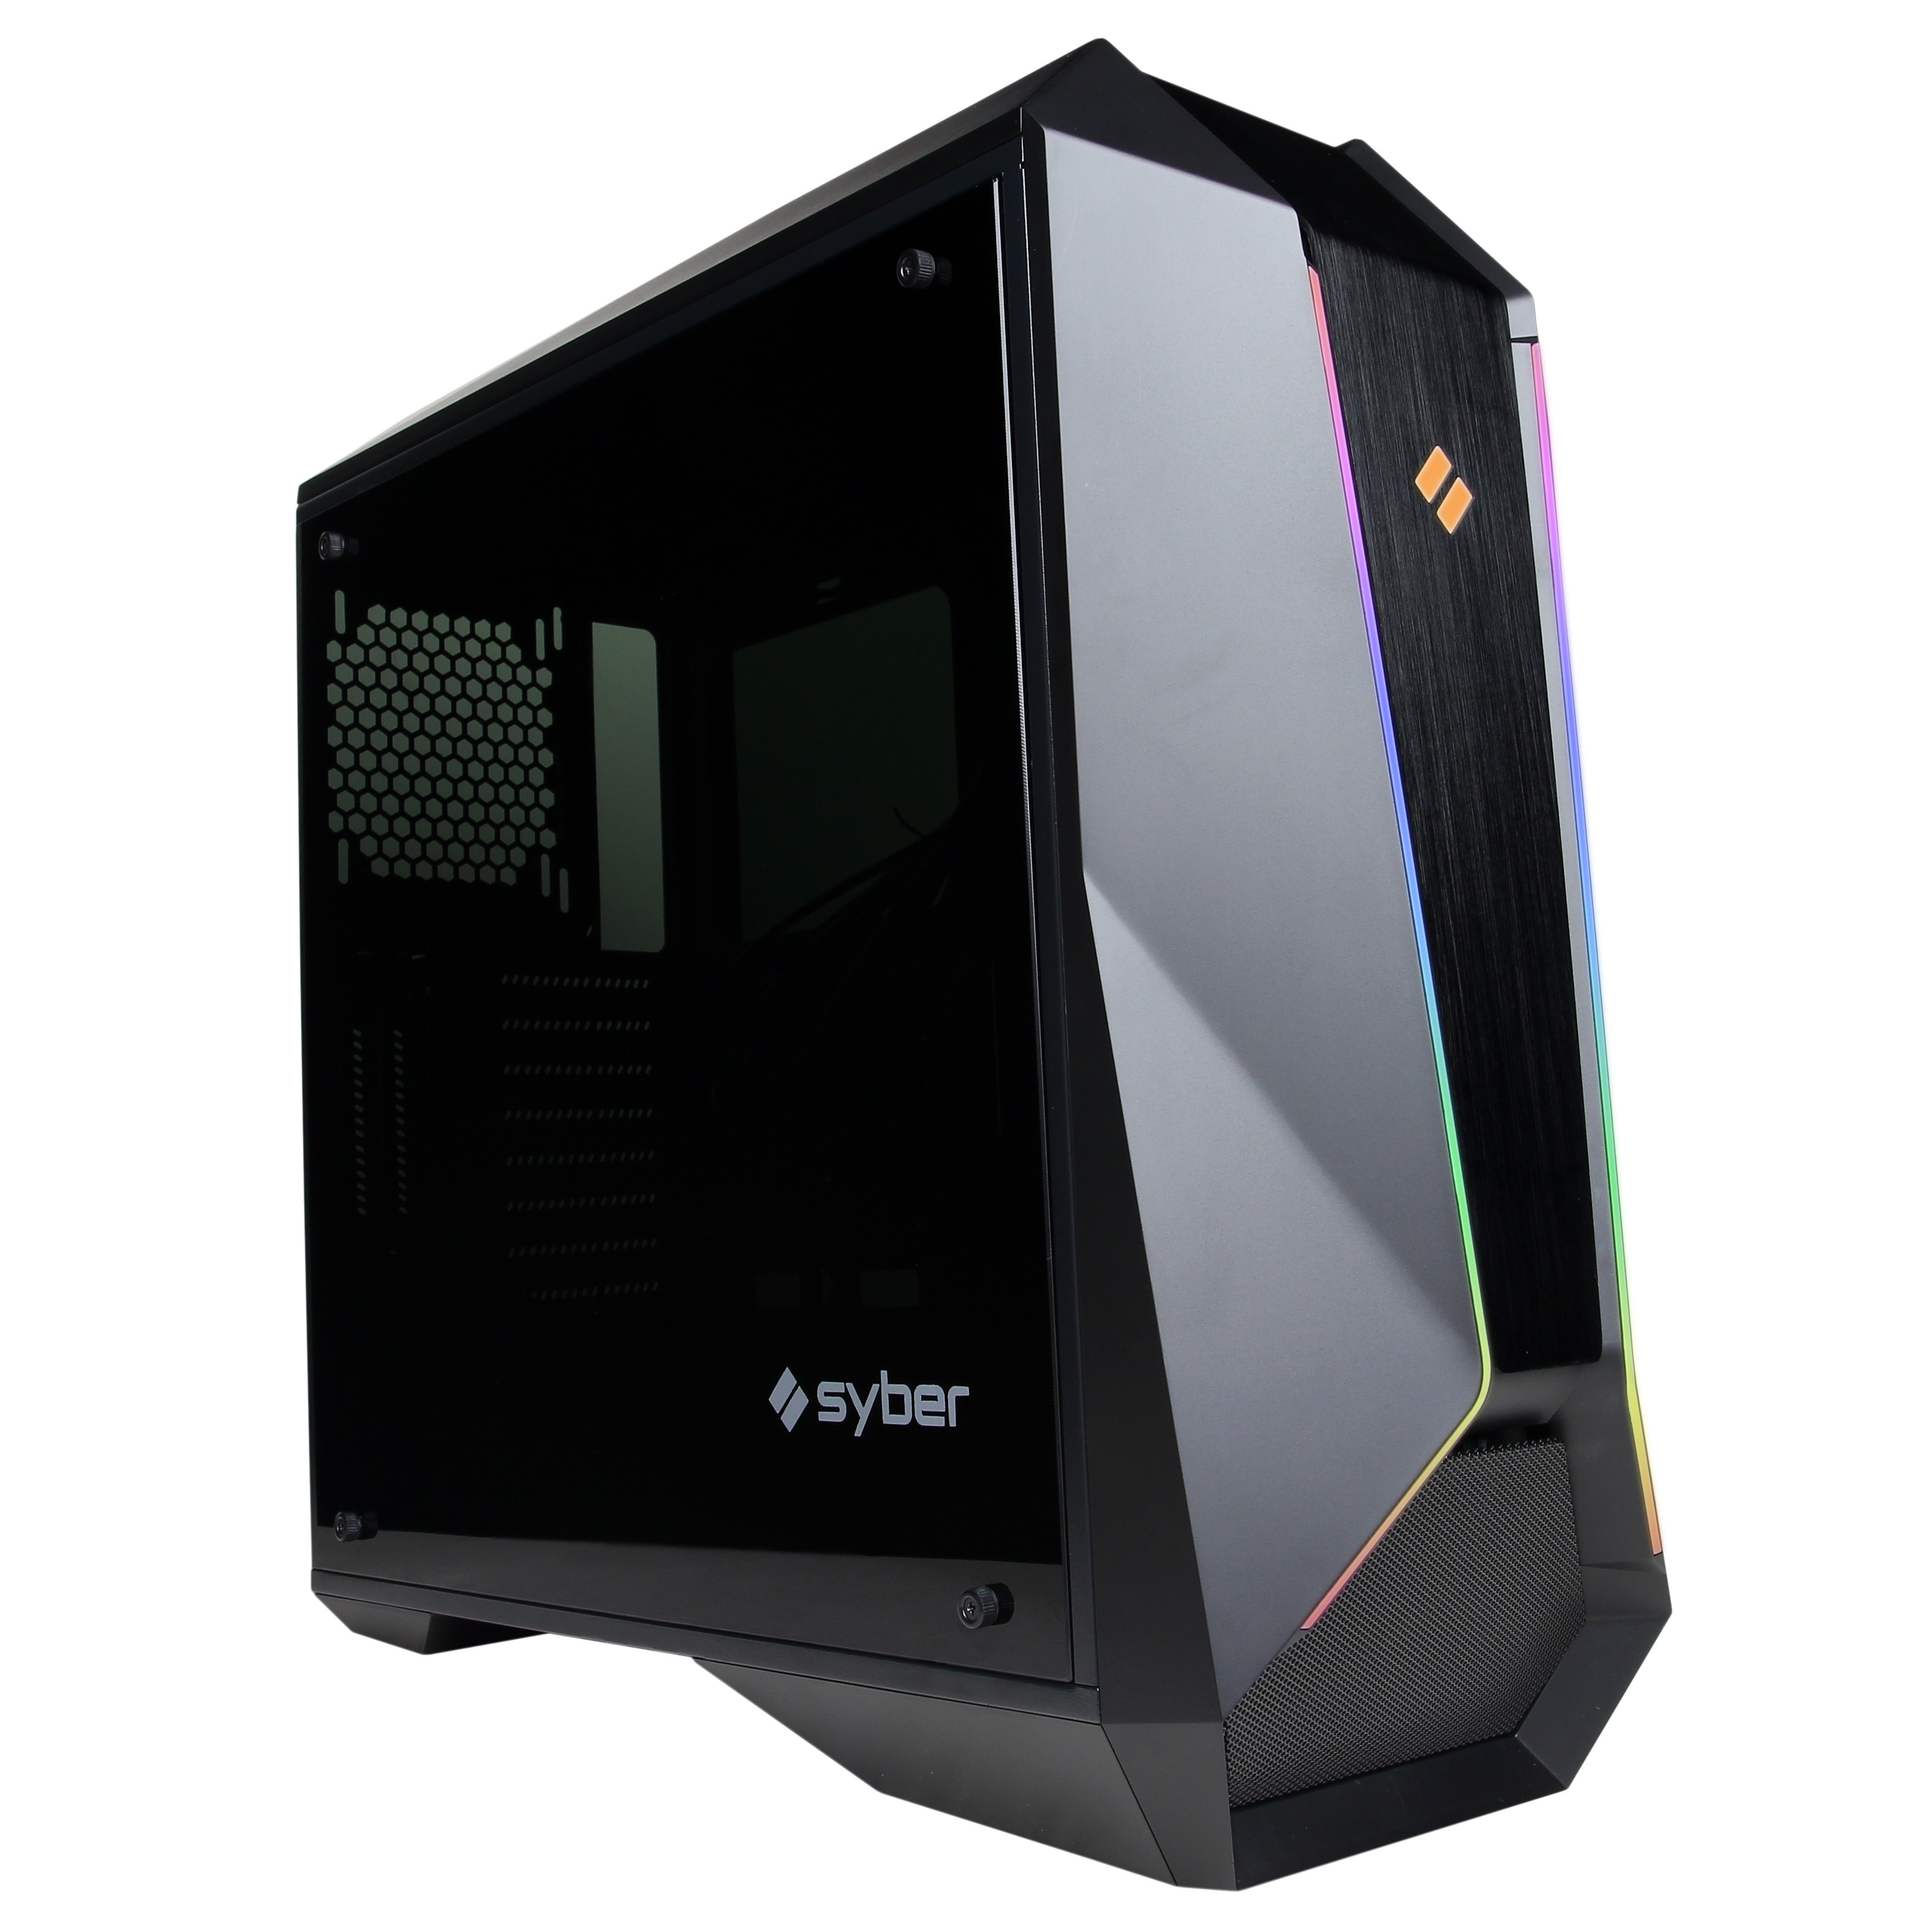 CYBERPOWERPC Syber L SLC100 Full Tower Gaming Case